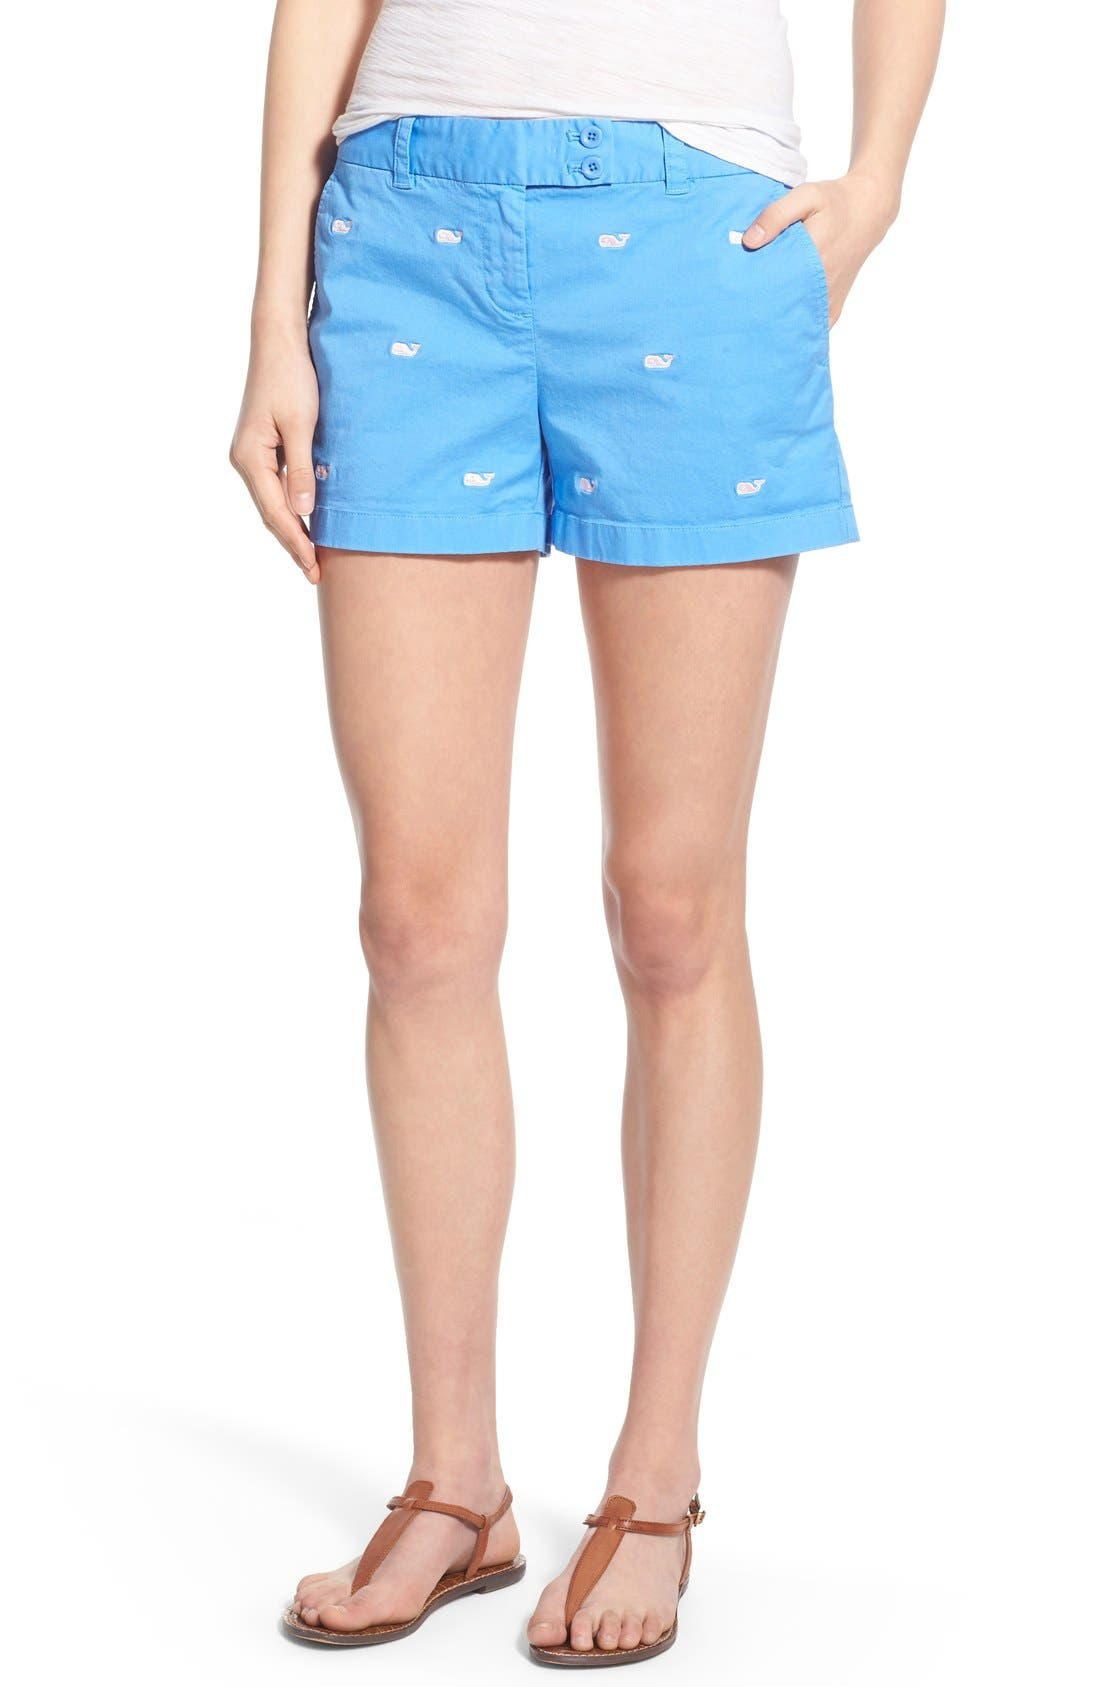 Alternate Image 1 Selected - Vineyard Vines 'Dayboat' Whale Embroidered Stretch Cotton Shorts